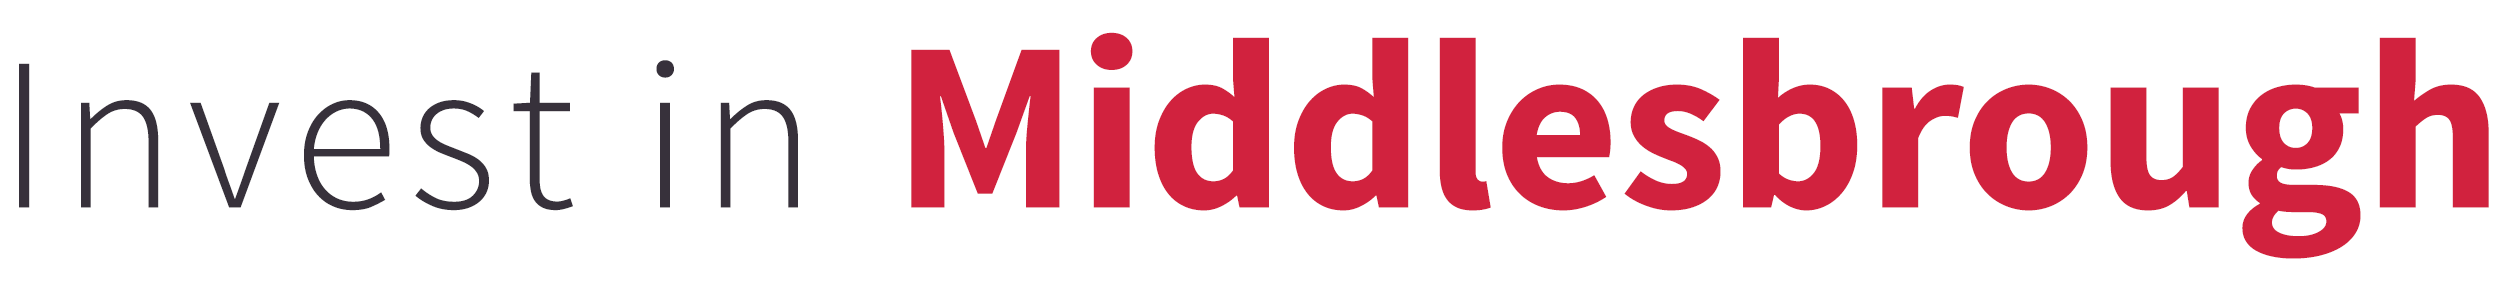 Invest in Middlesbrough logo